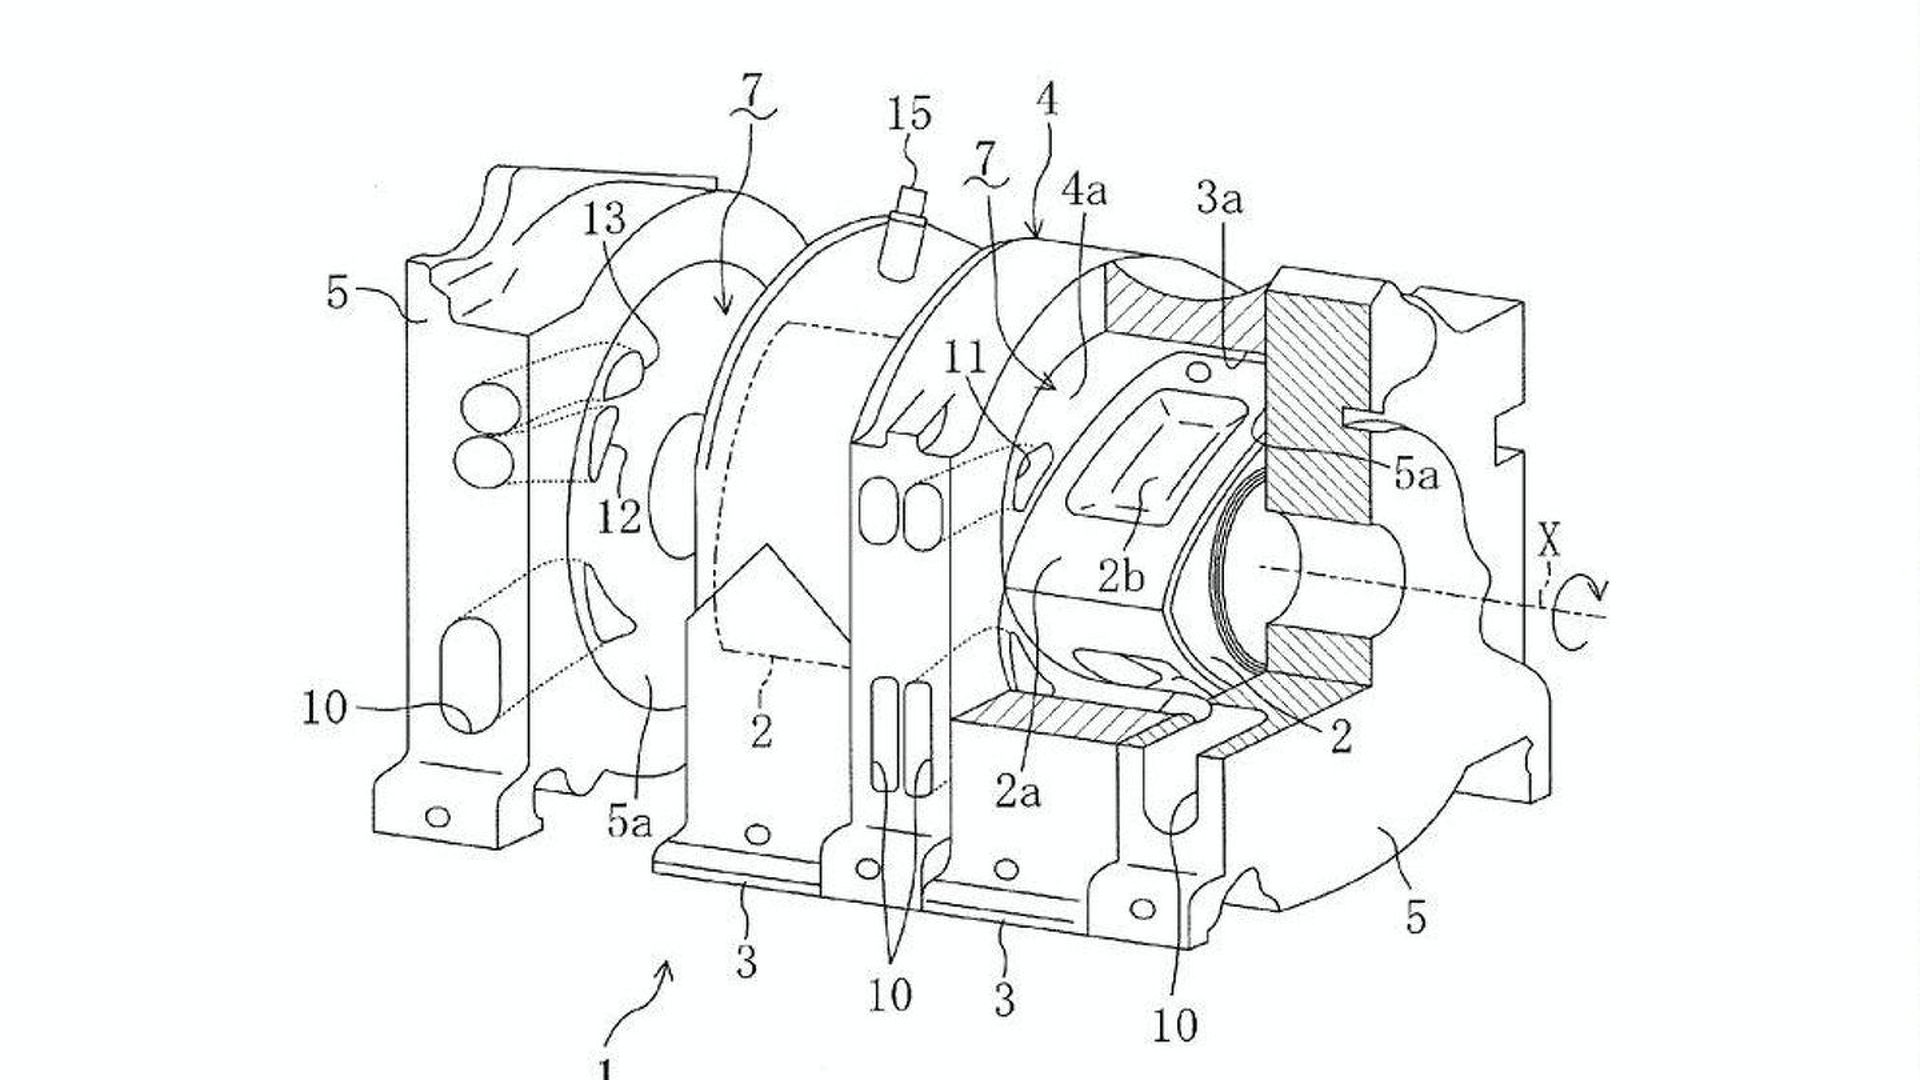 patent diagrams reveal direct injection mazda renesis rotary engine rh motor1 com mazda 6 engine diagram mazda 3 engine diagram